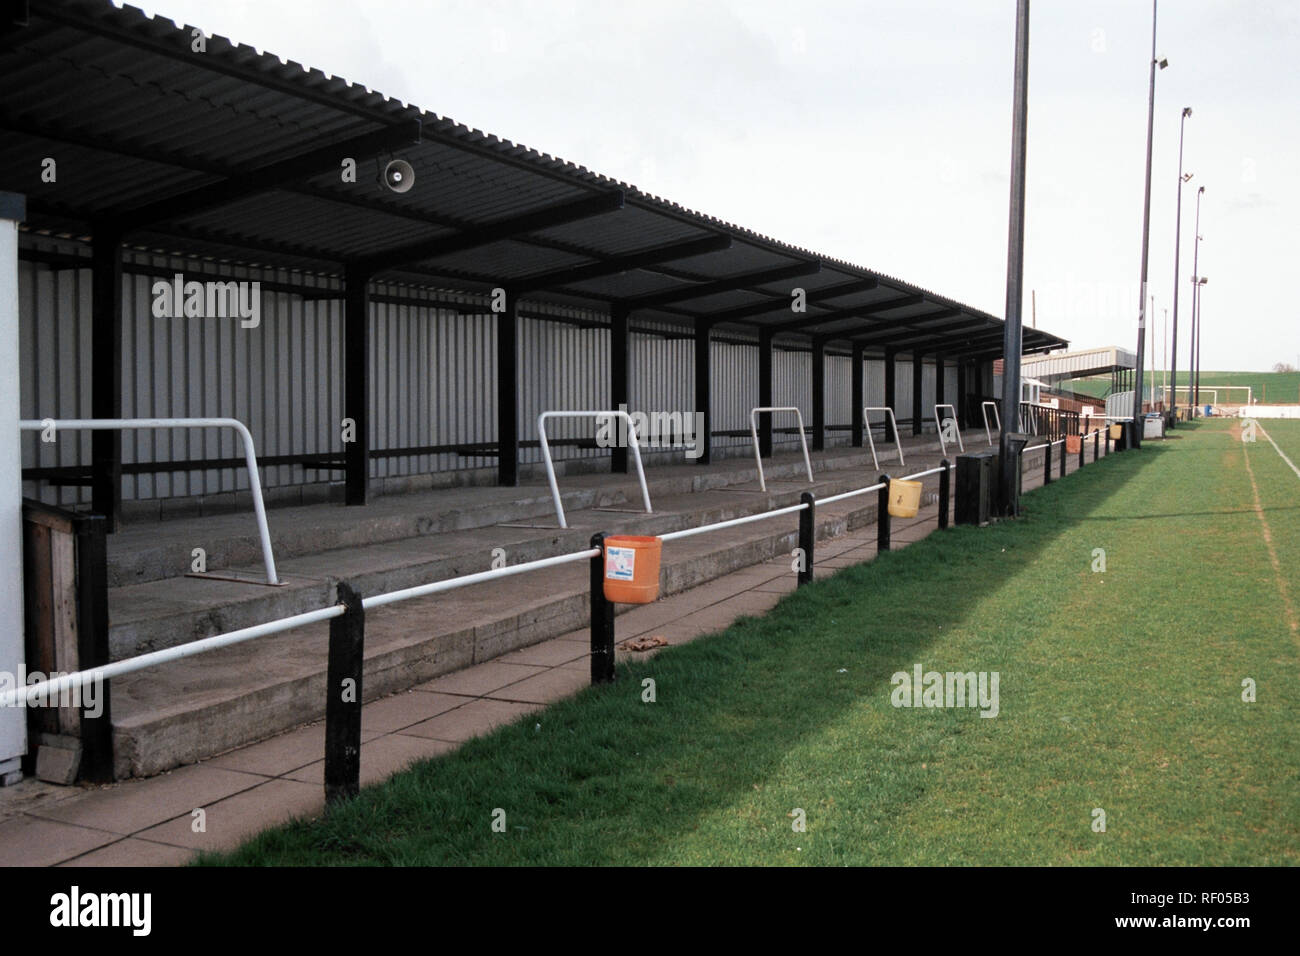 Covered terracing at Northallerton Town FC Football Ground, Ainderby Road, Romanby, Northallerton, North Yorkshire, pictured on 2nd April 1994 Stock Photo